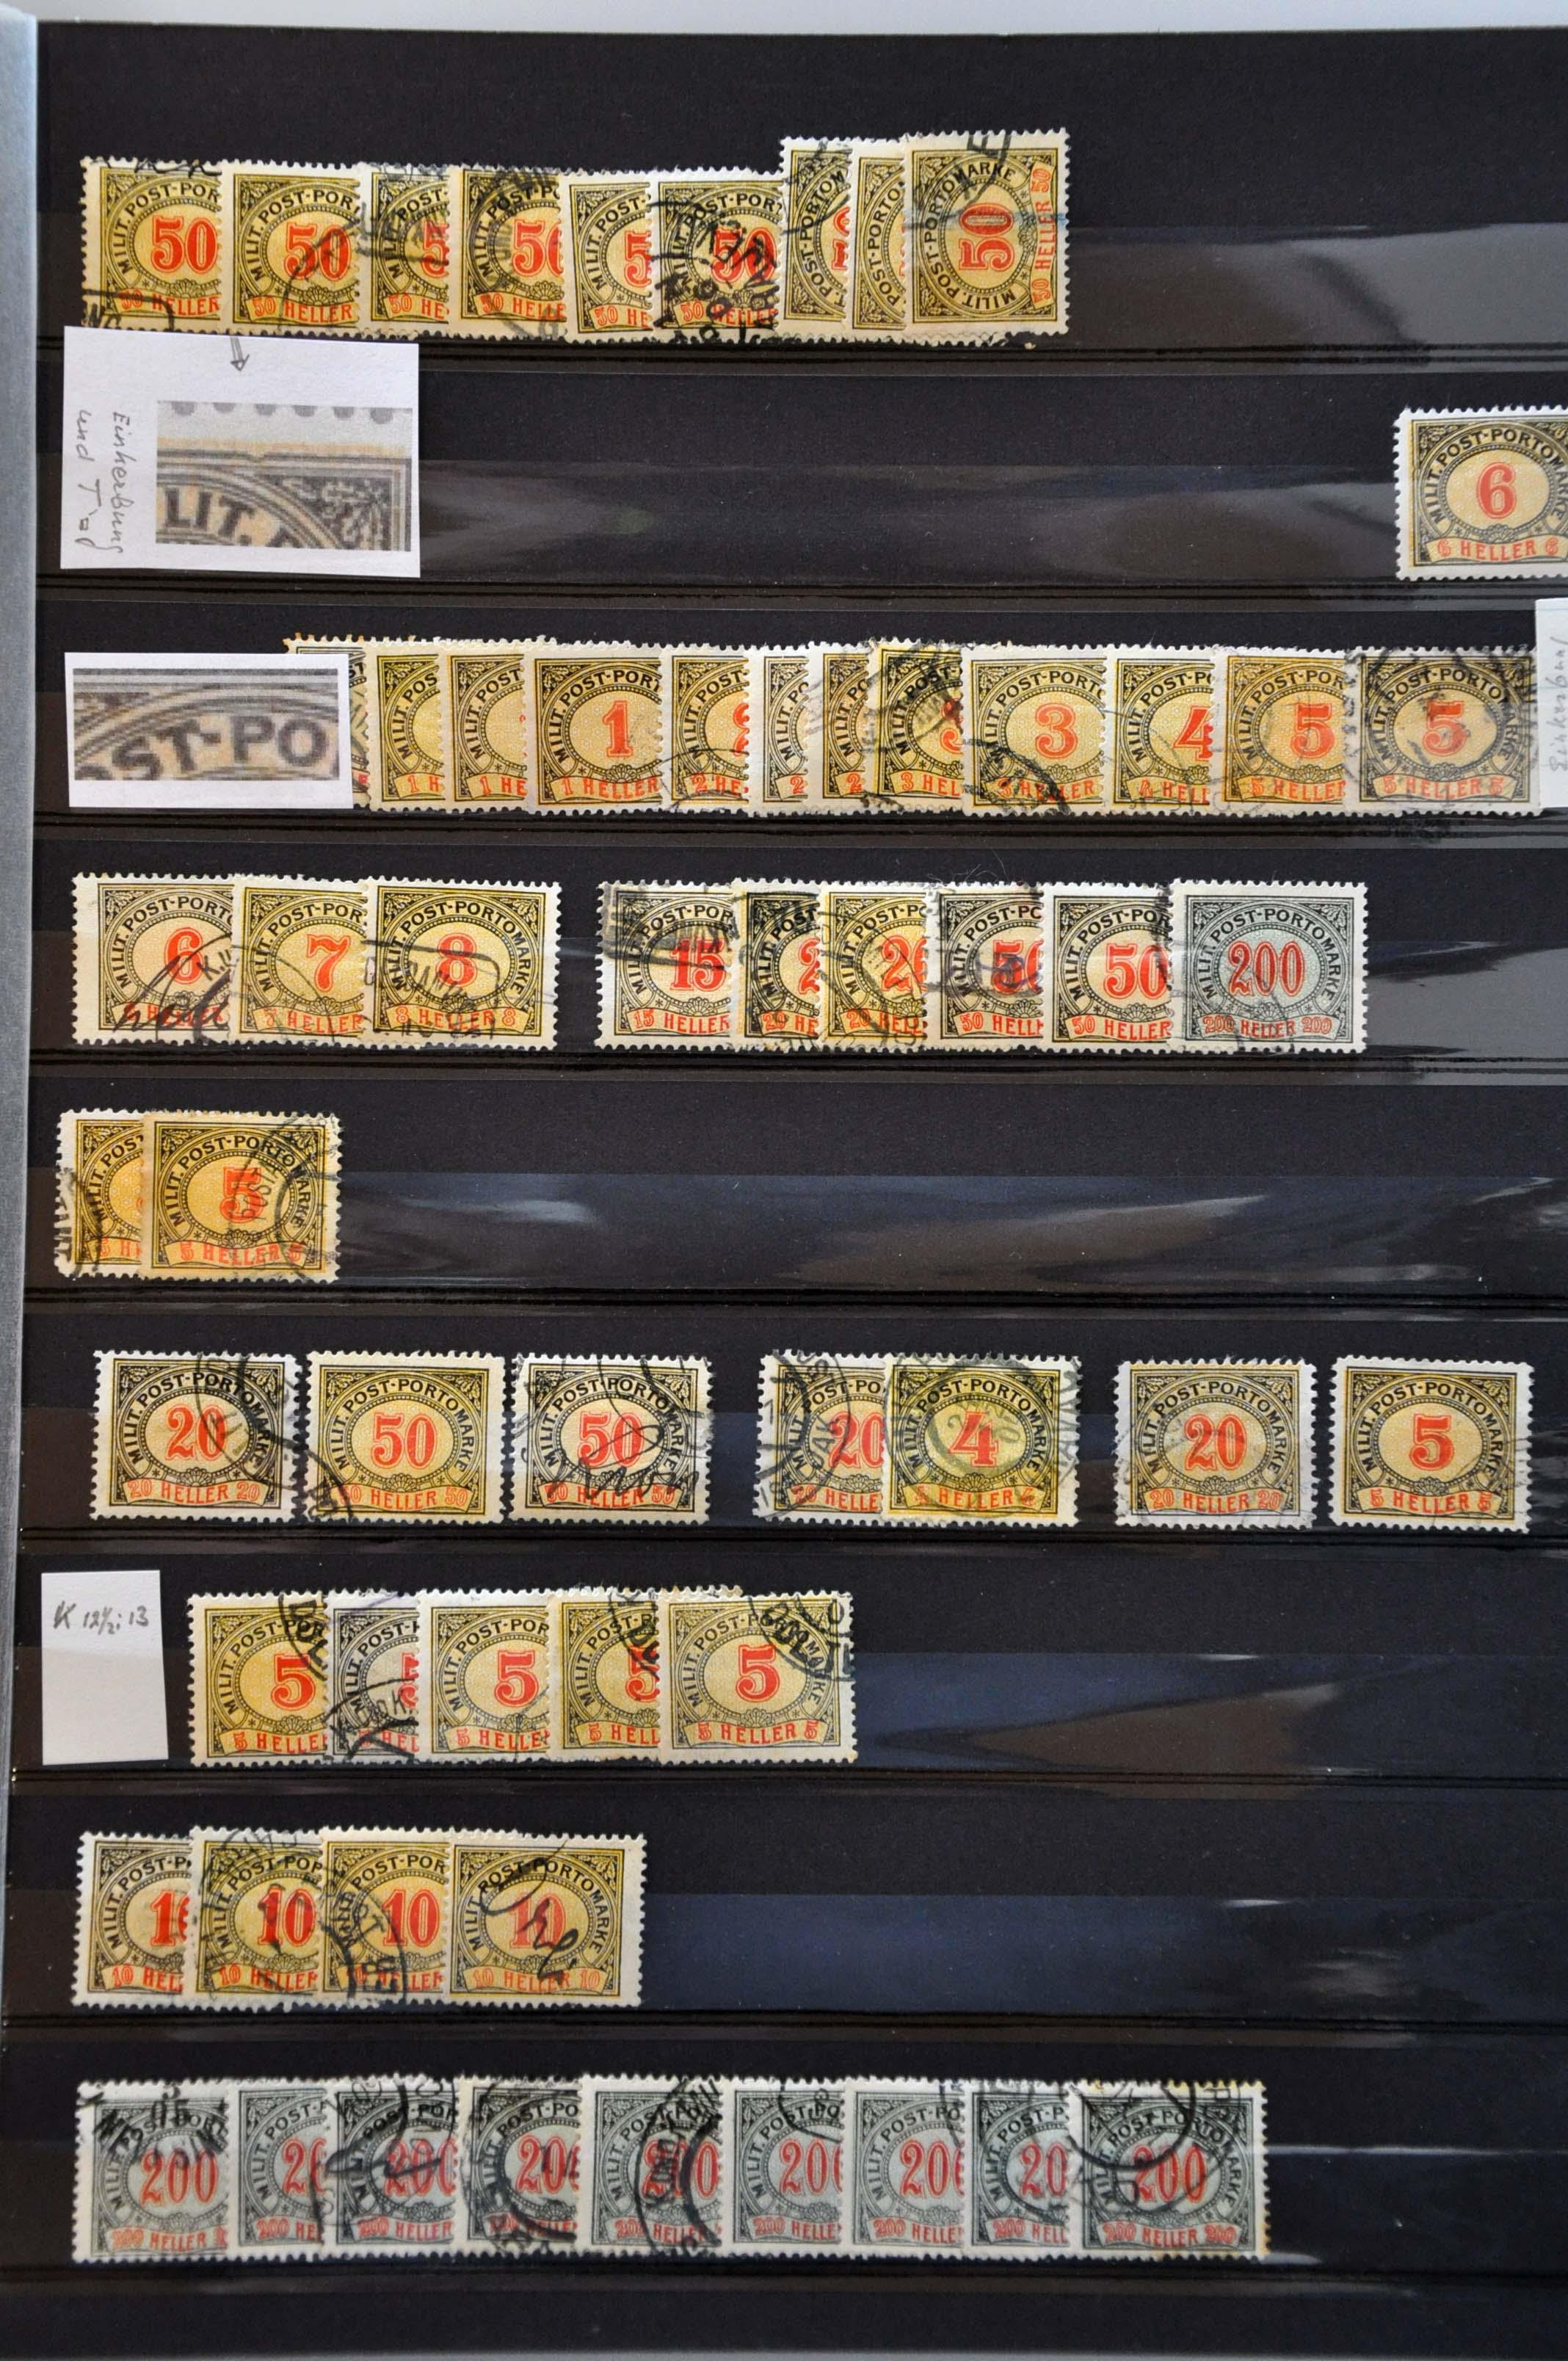 Lot 584 - Austria and former territories Bosnia and Herzegovina (Austrian) -  Corinphila Veilingen Auction 245-246 Day 2 - Foreign countries - Collections and lots, Foreign countries - Boxes and literature